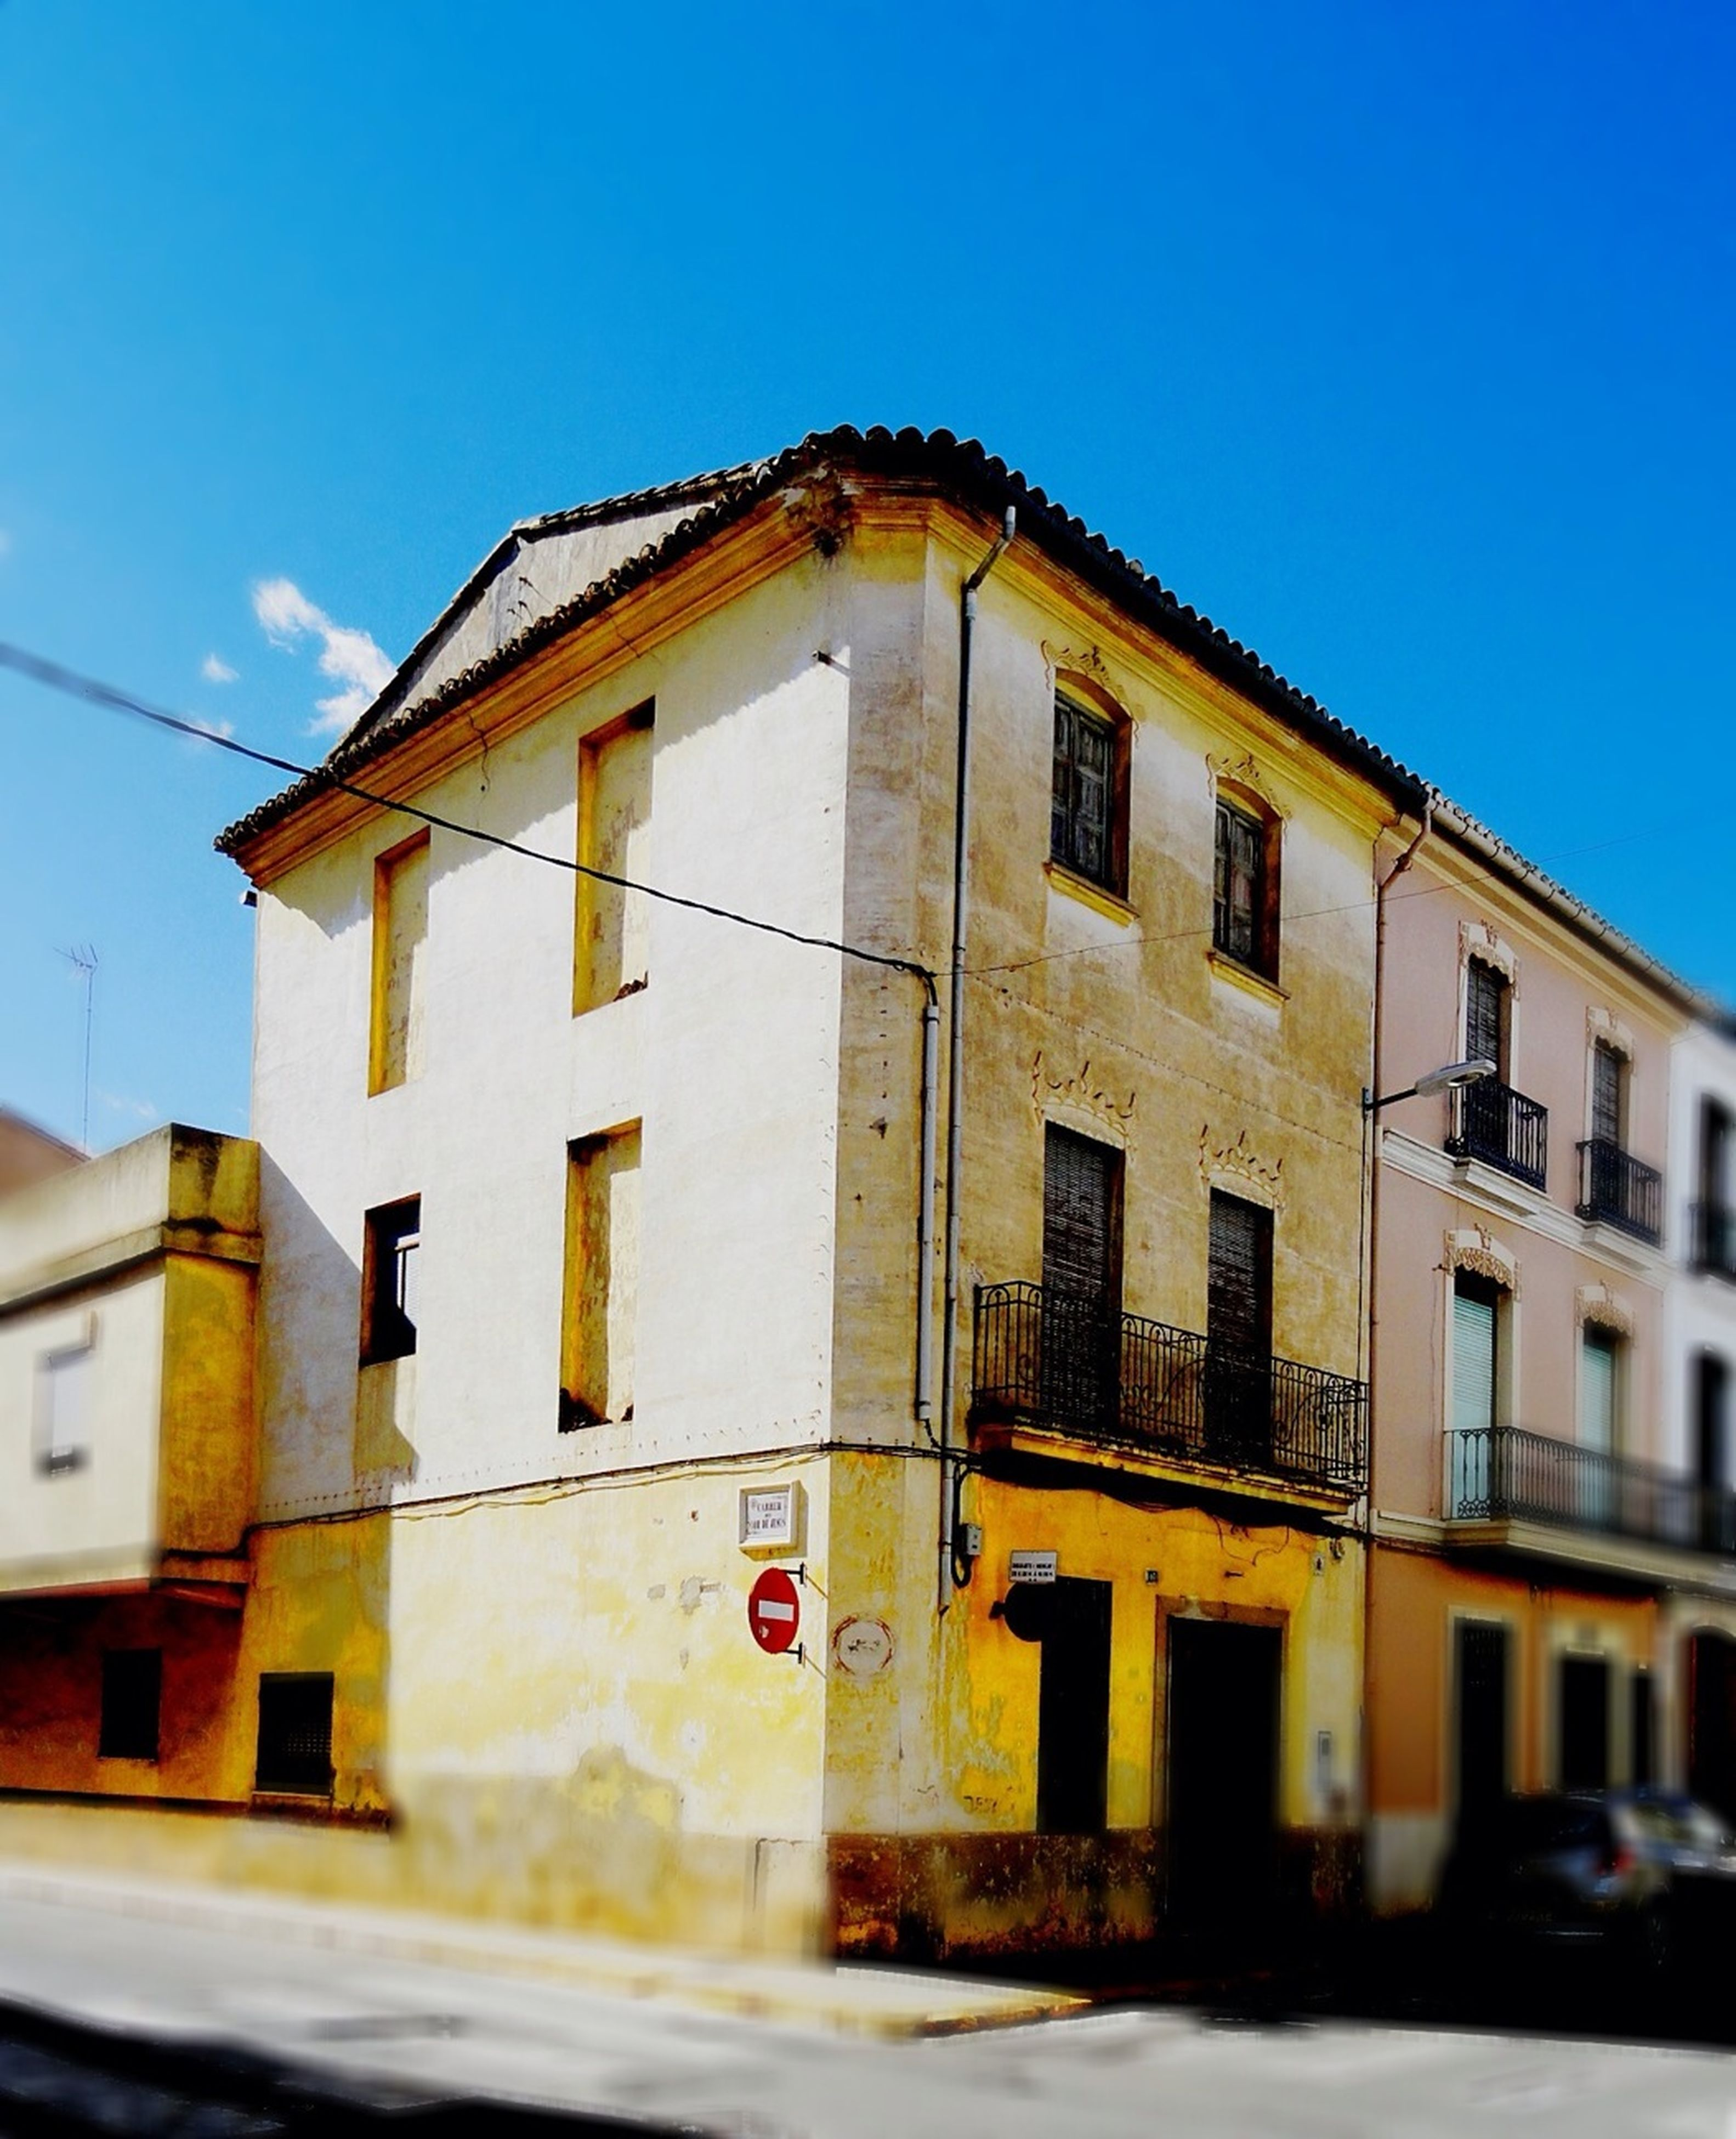 building exterior, architecture, built structure, clear sky, window, blue, residential structure, residential building, house, street, building, day, outdoors, city, sky, road, sunlight, transportation, no people, low angle view